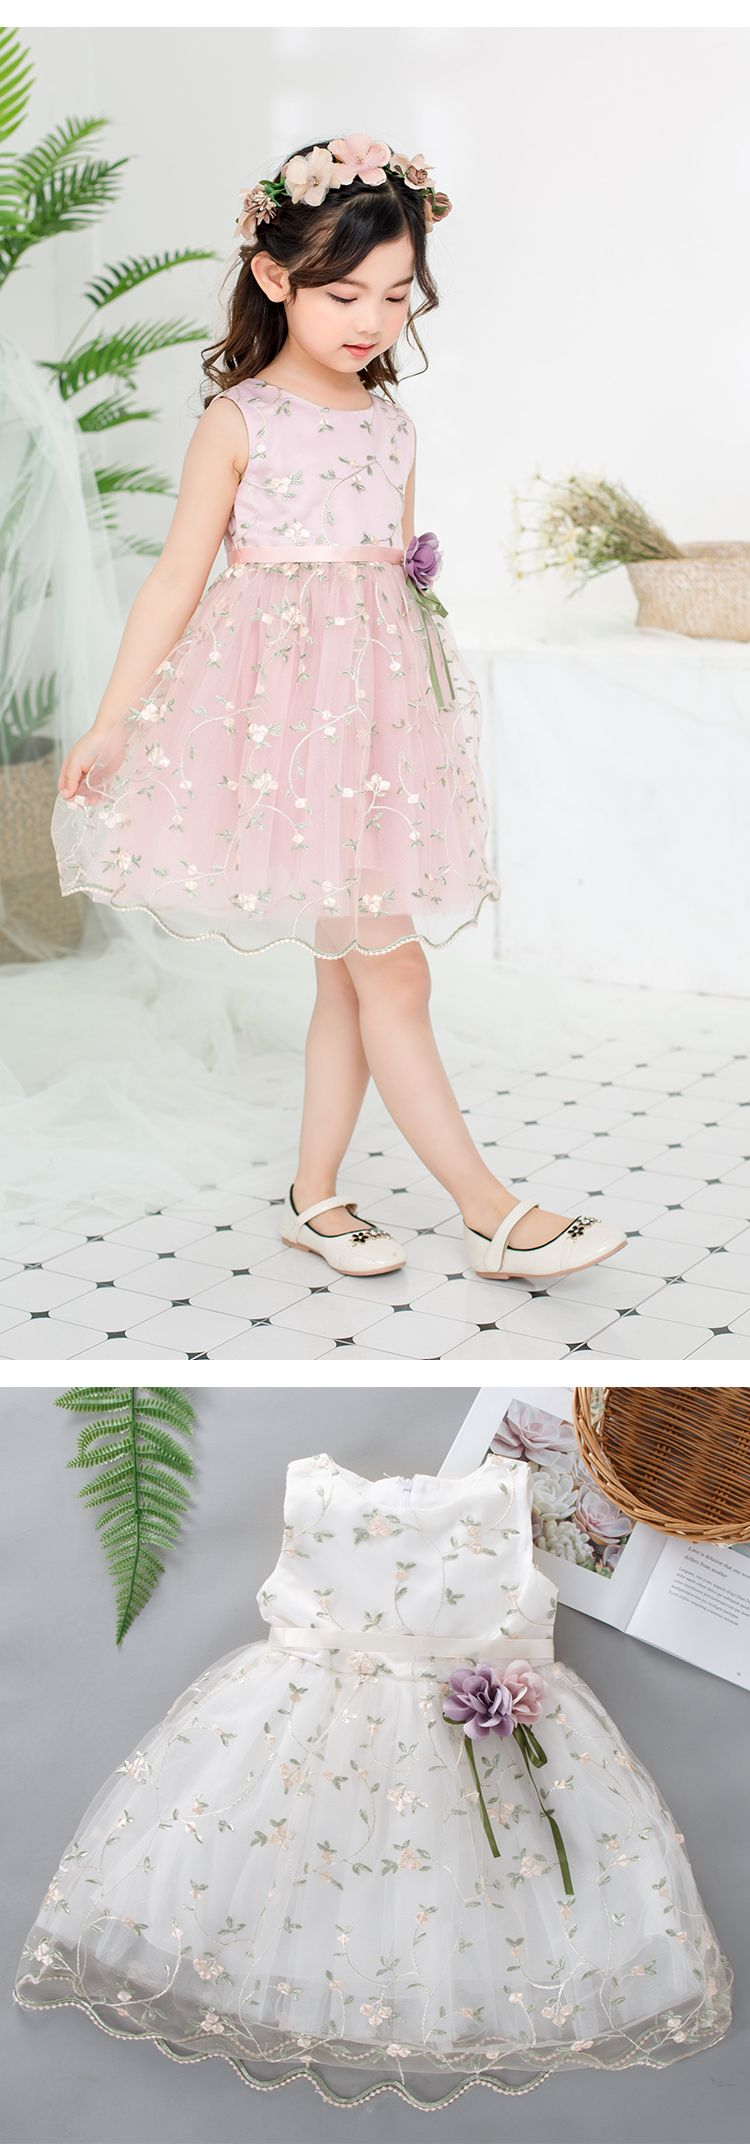 Hot sale girls special occasion dresses kids ruffles lace party